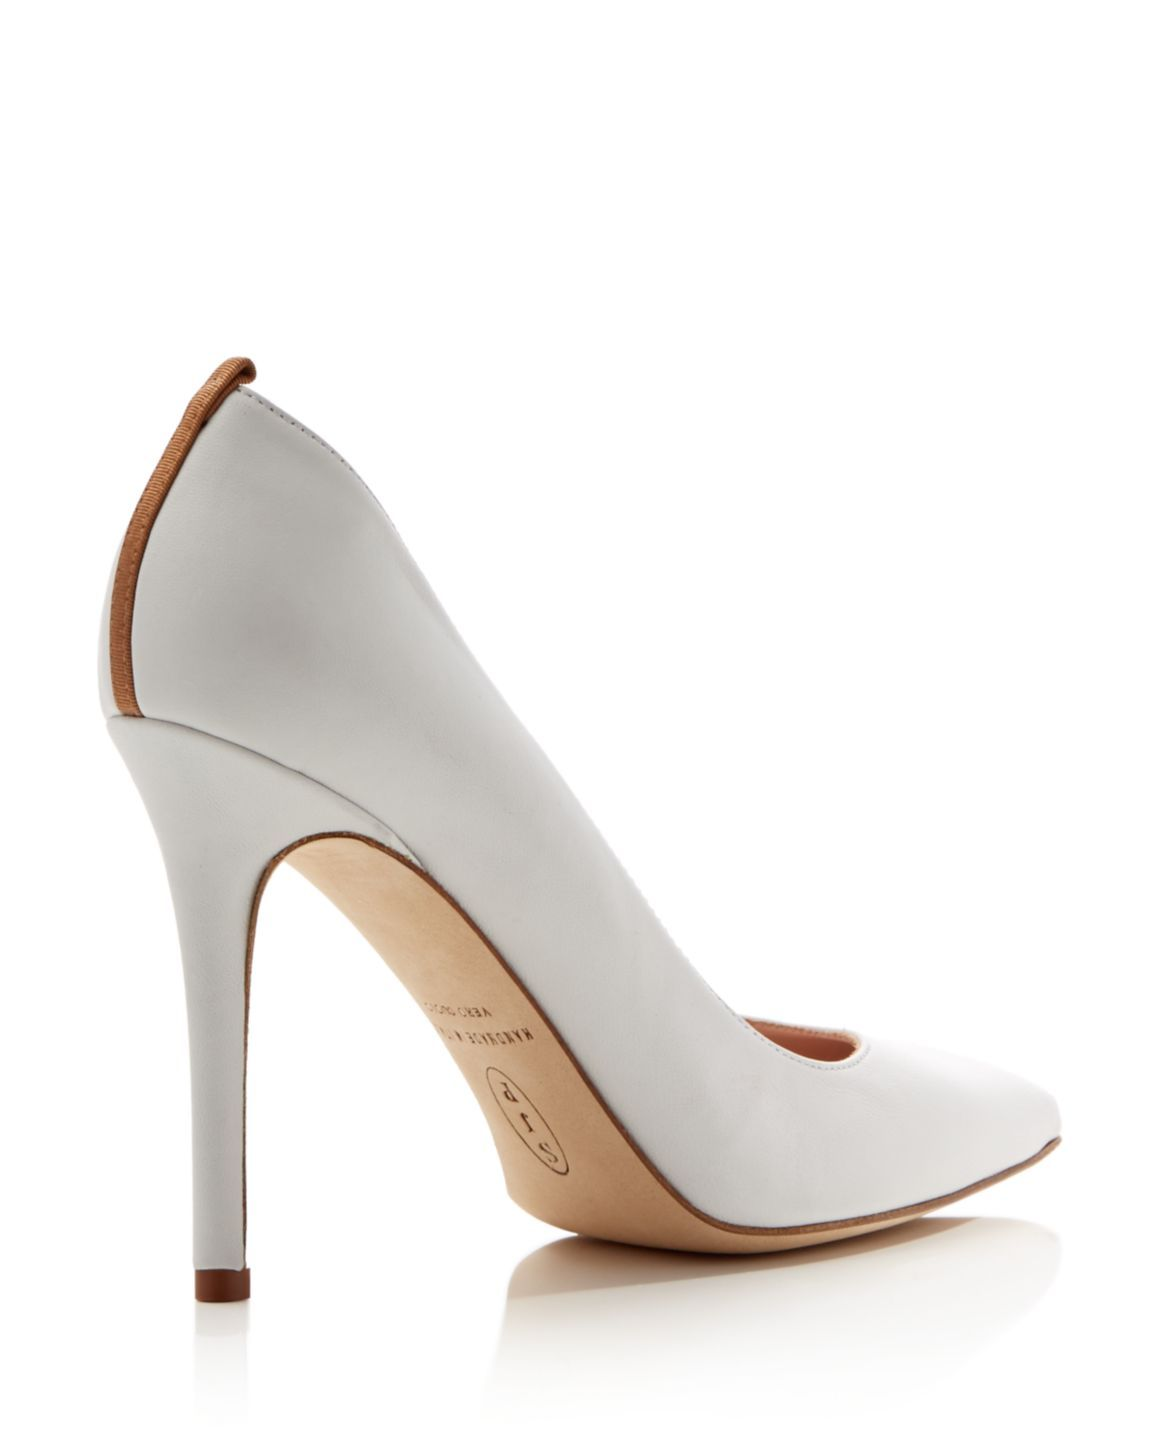 SJP by Sarah Jessica Parker Fawn Pointed Toe High Heel Pumps